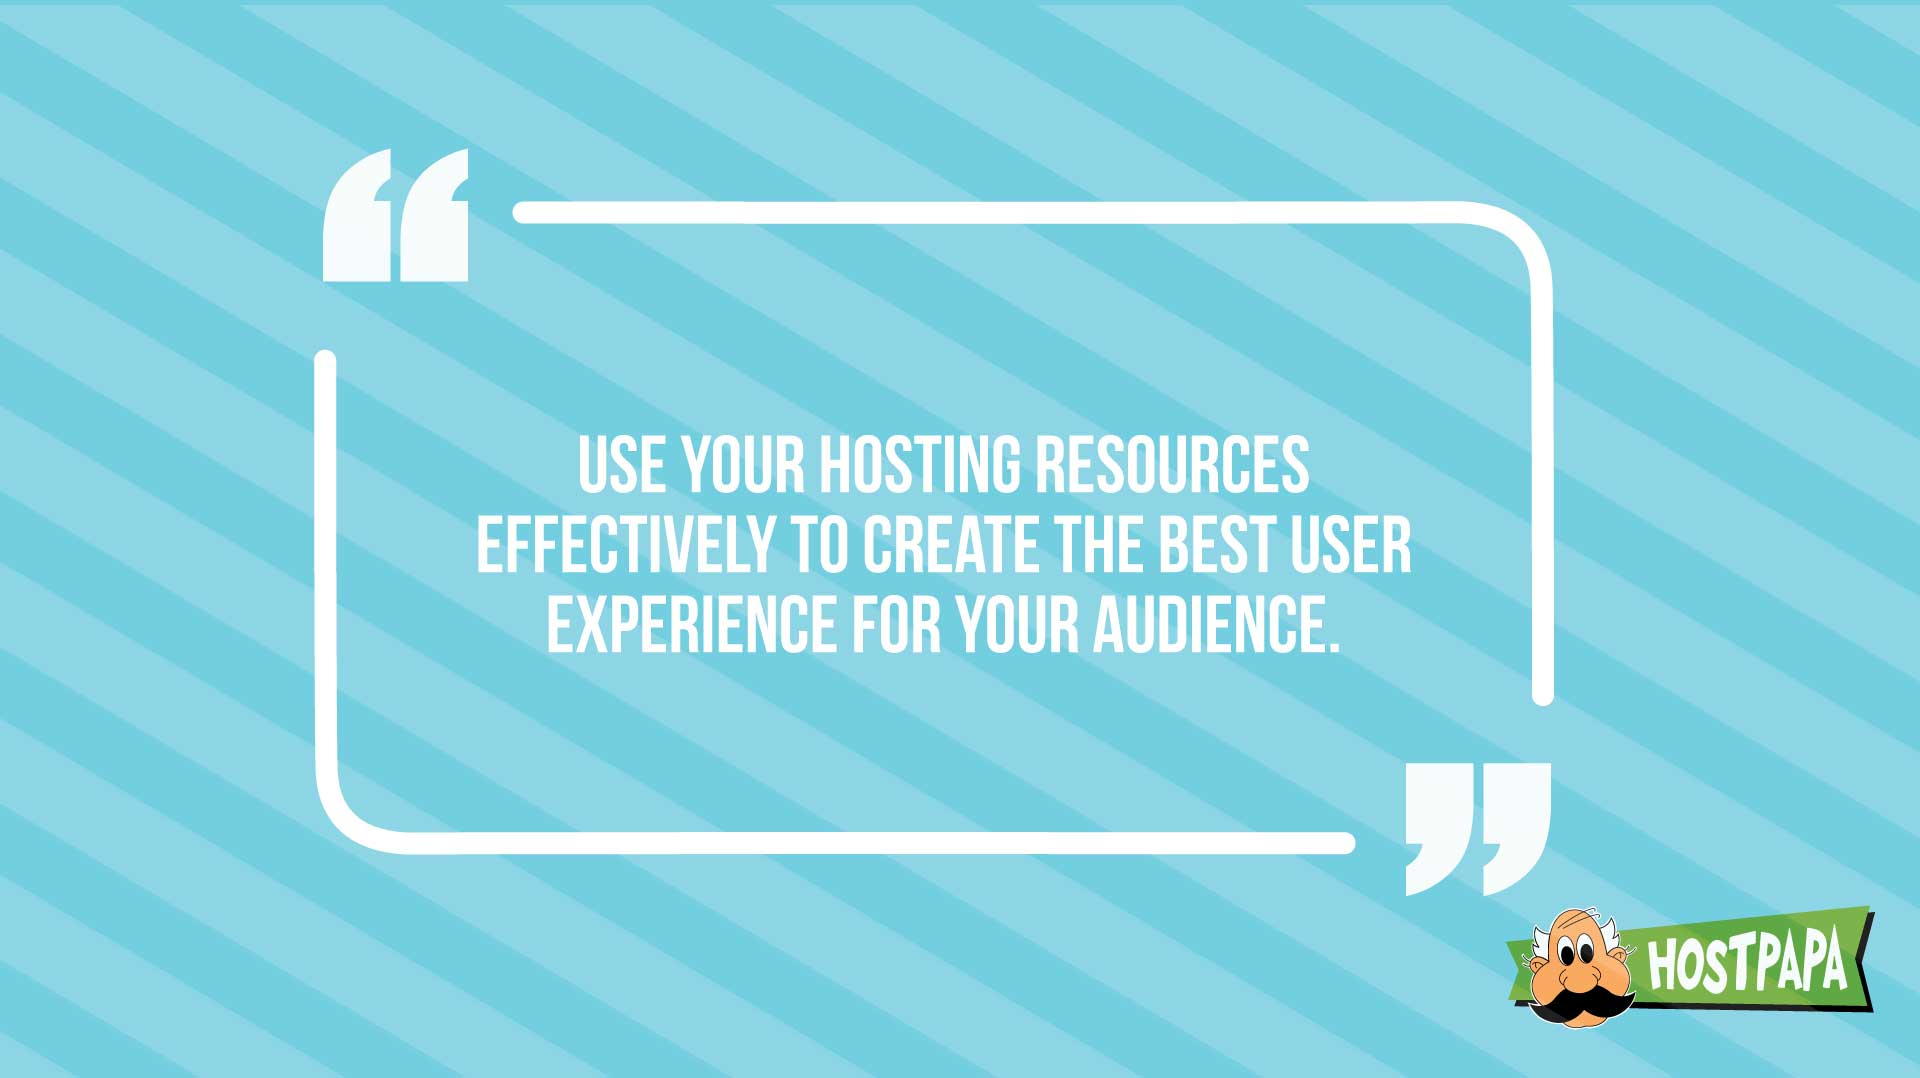 Use your hosting resources effectively to create the best user experience for your audience